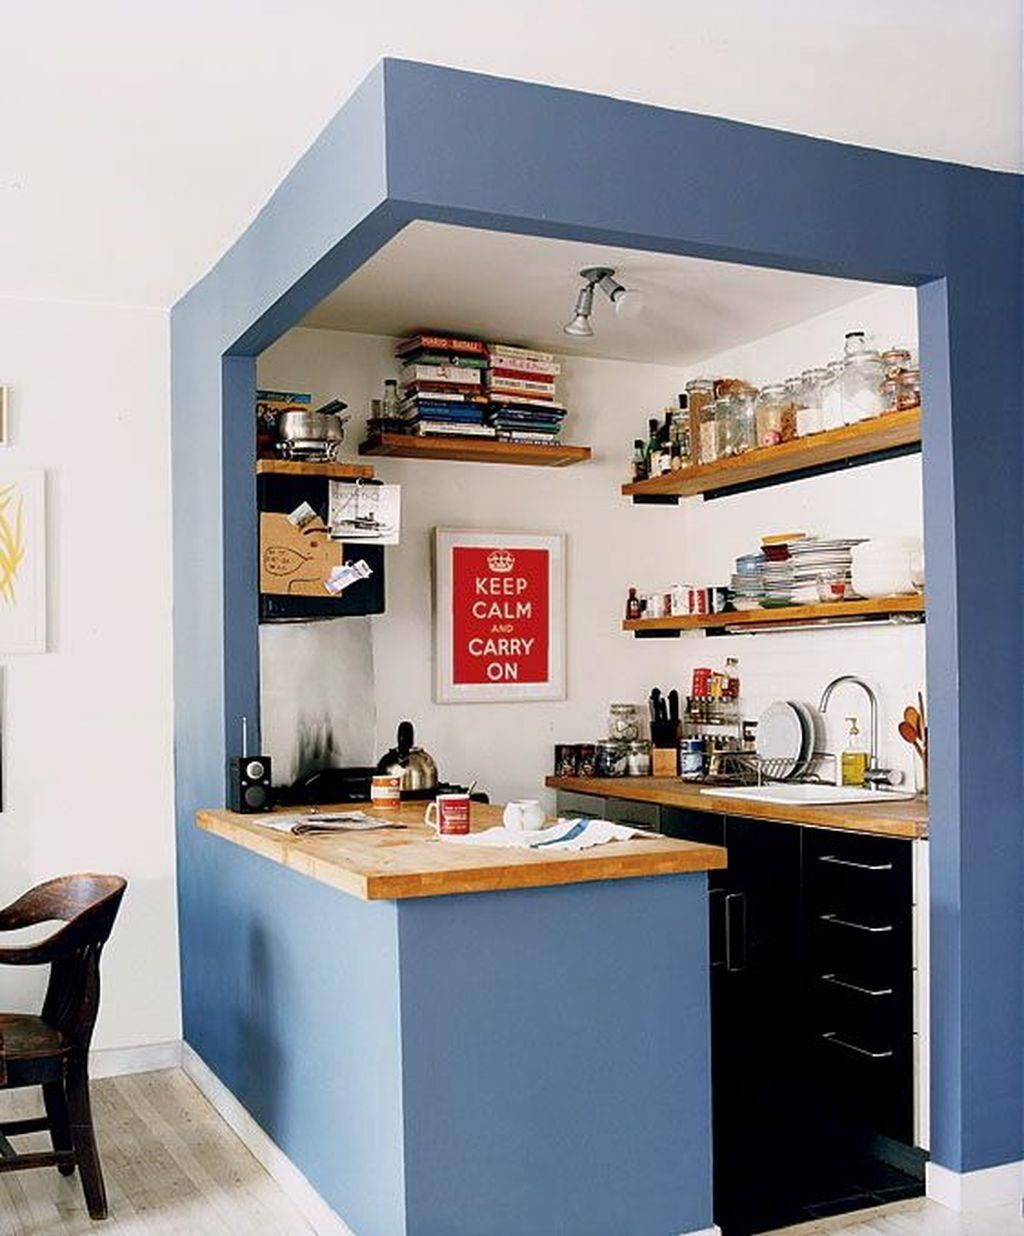 47 Amazing Kitchen And Dining Room Designs For Small Spaces In